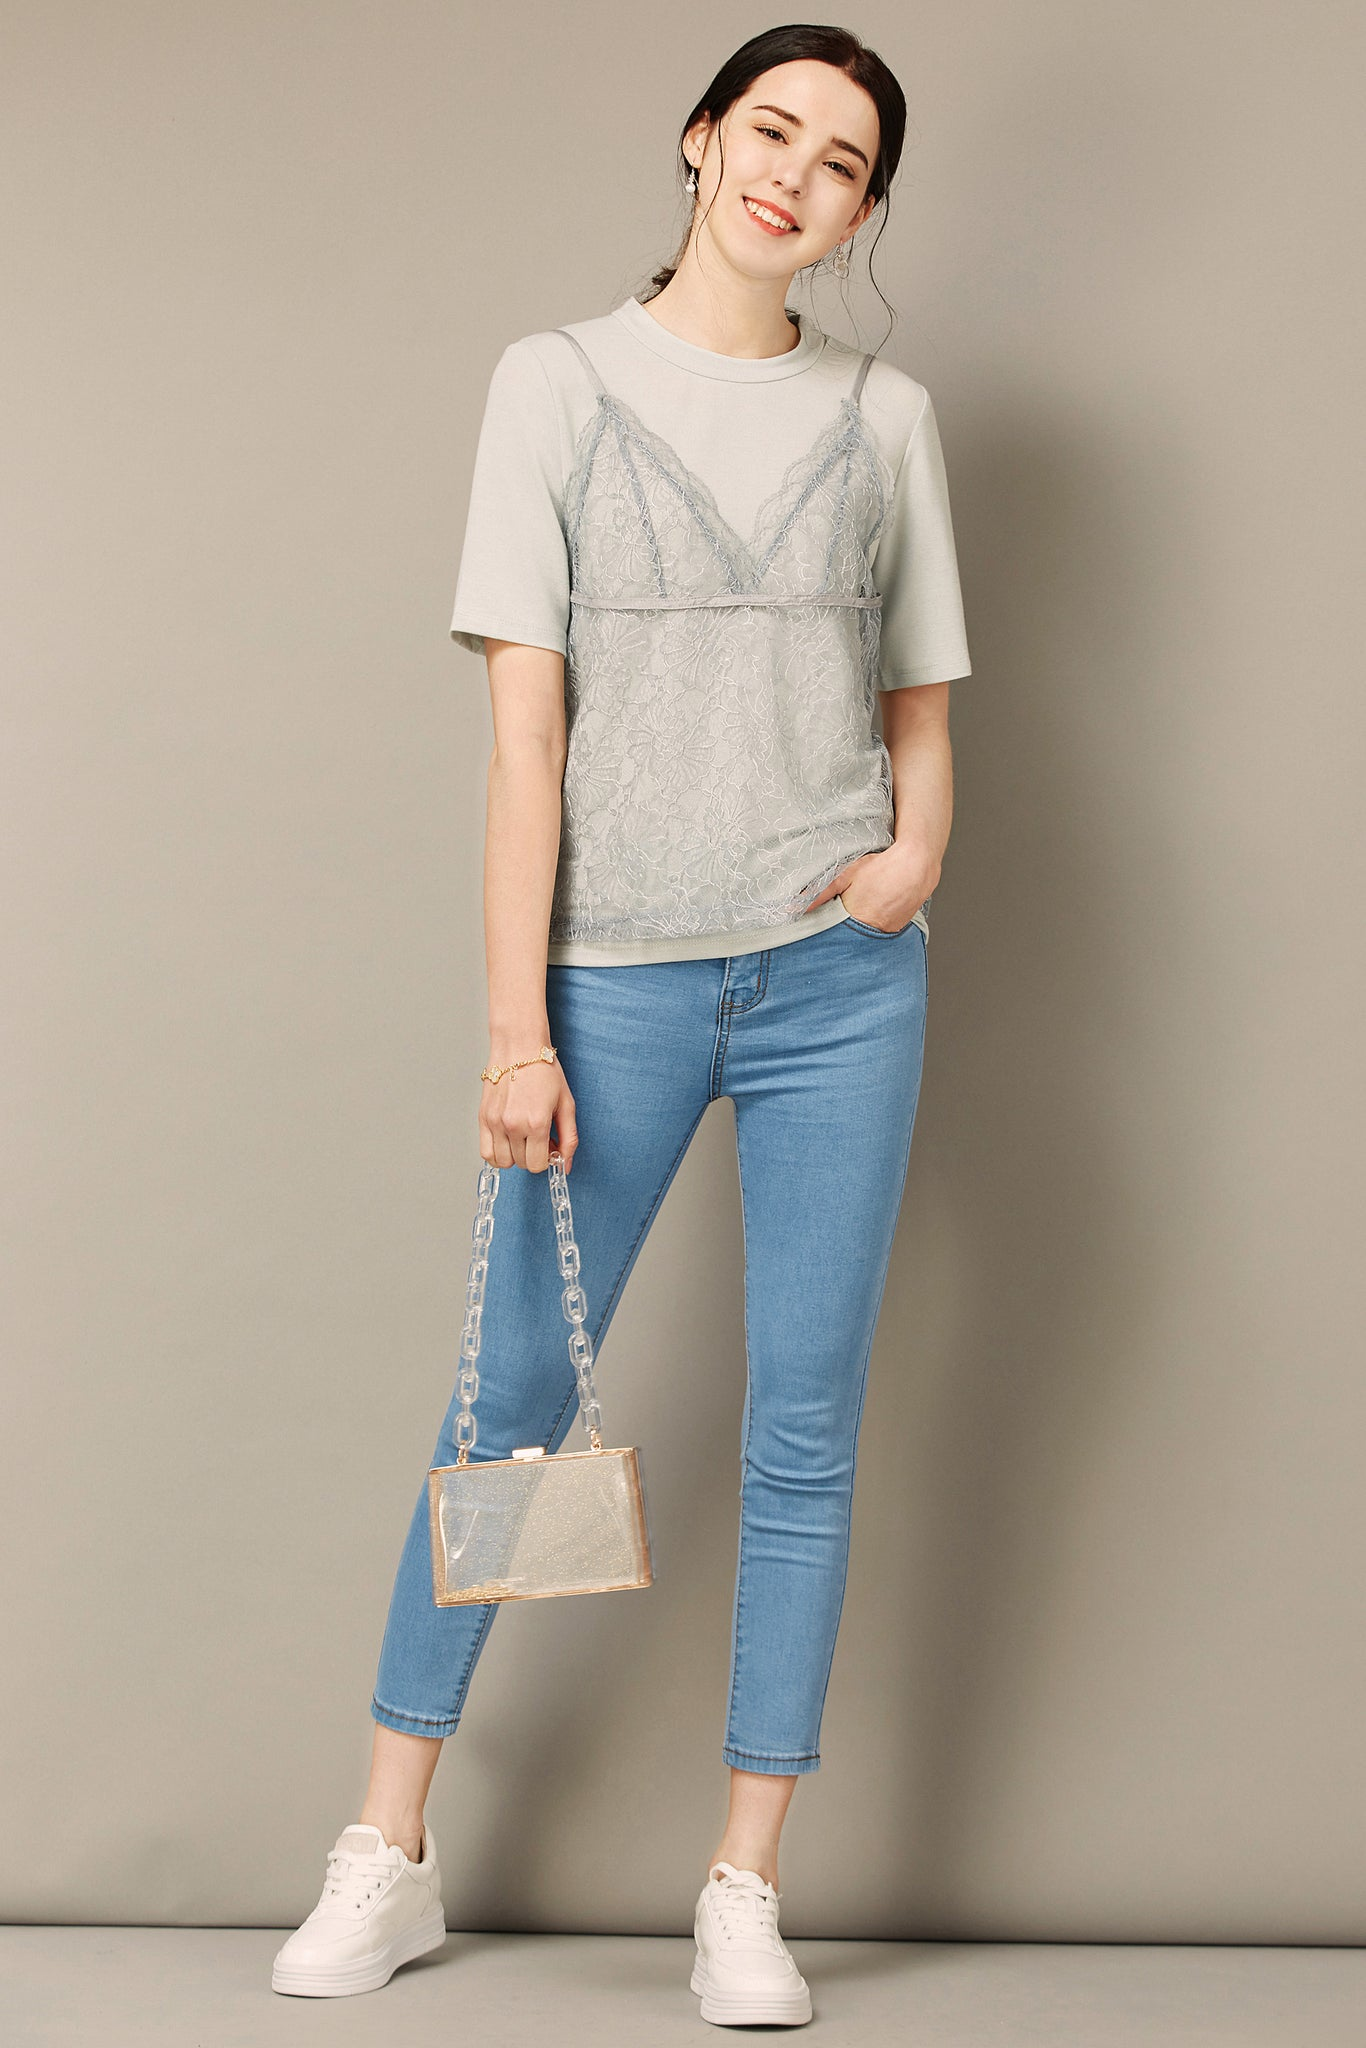 Light Blue Sheer Lace Camisole With Shirt